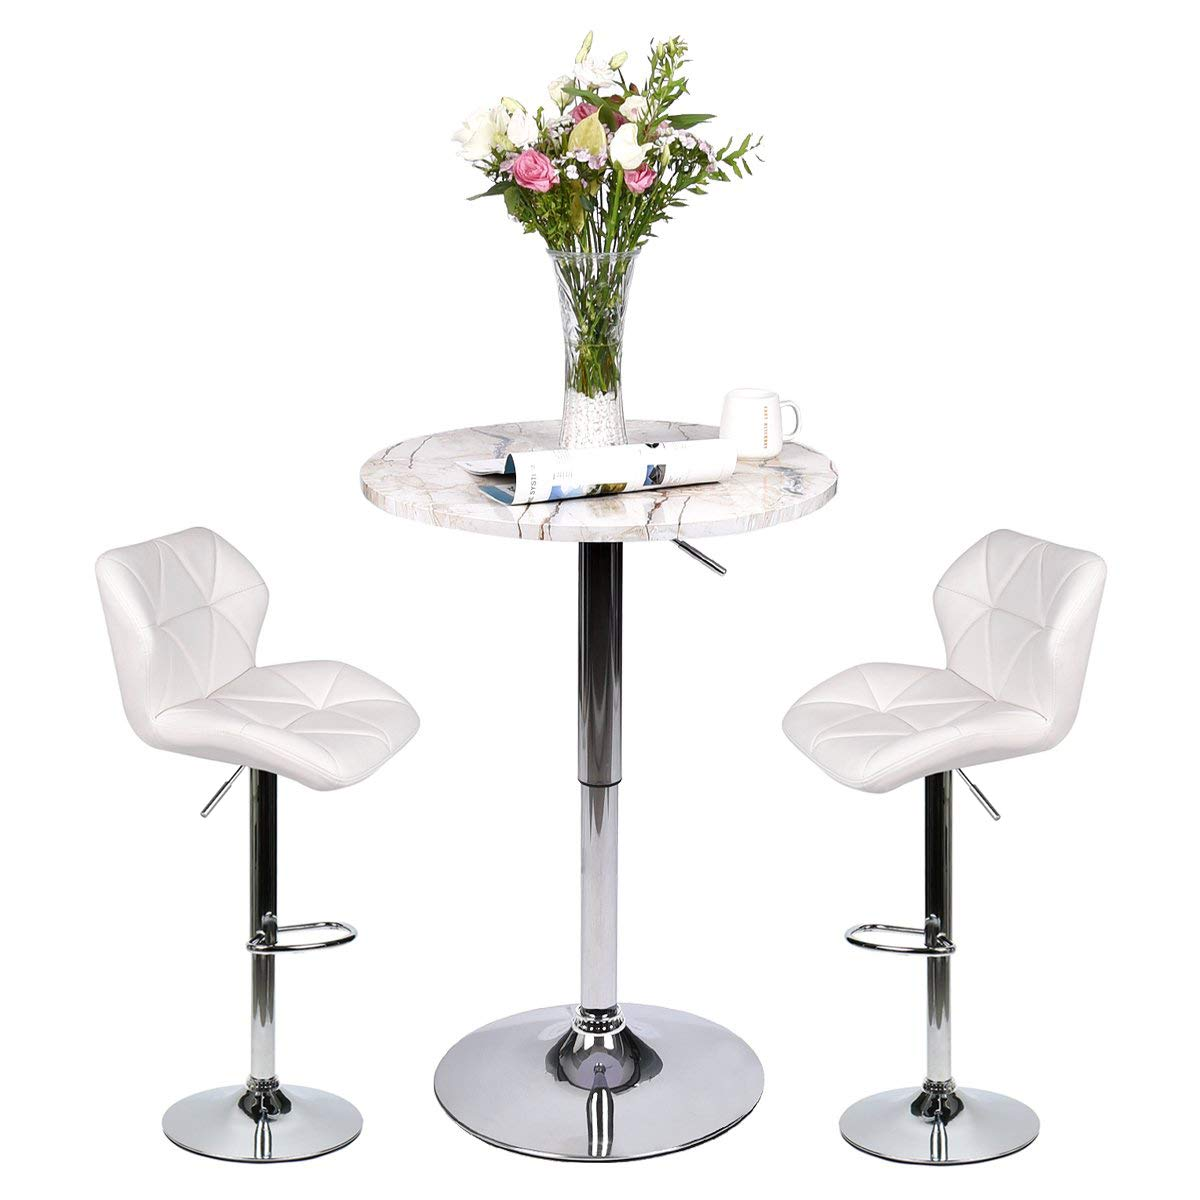 YOURLITE Pub Table Set 3 Piece 24 inch White Wood Round Table with 2 Leatherette Chairs Height Adjustable White Barstools and Marble Stripe Pub Table by YOURLITE